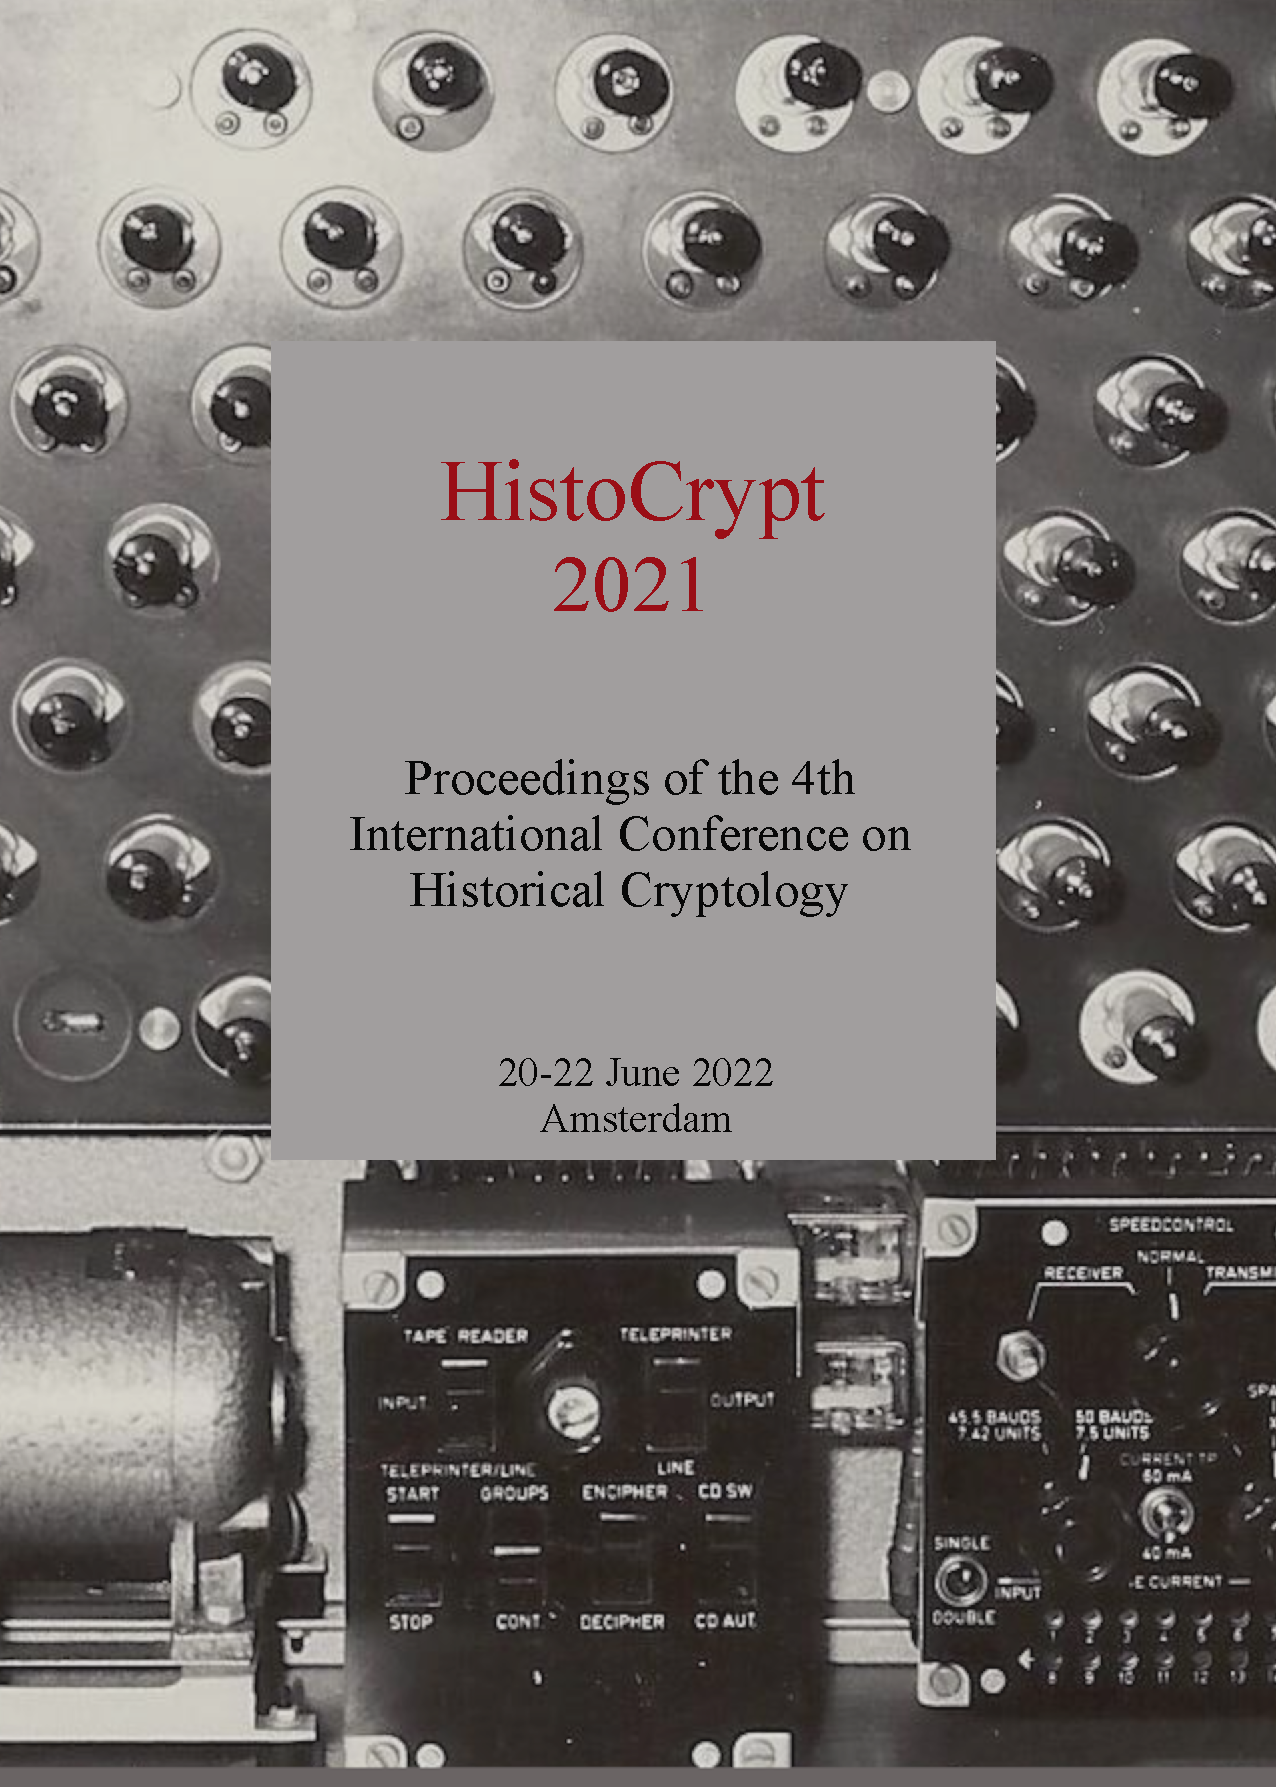 View Proceedings of the 4th International Conference on Historical Cryptology HistoCrypt 2021